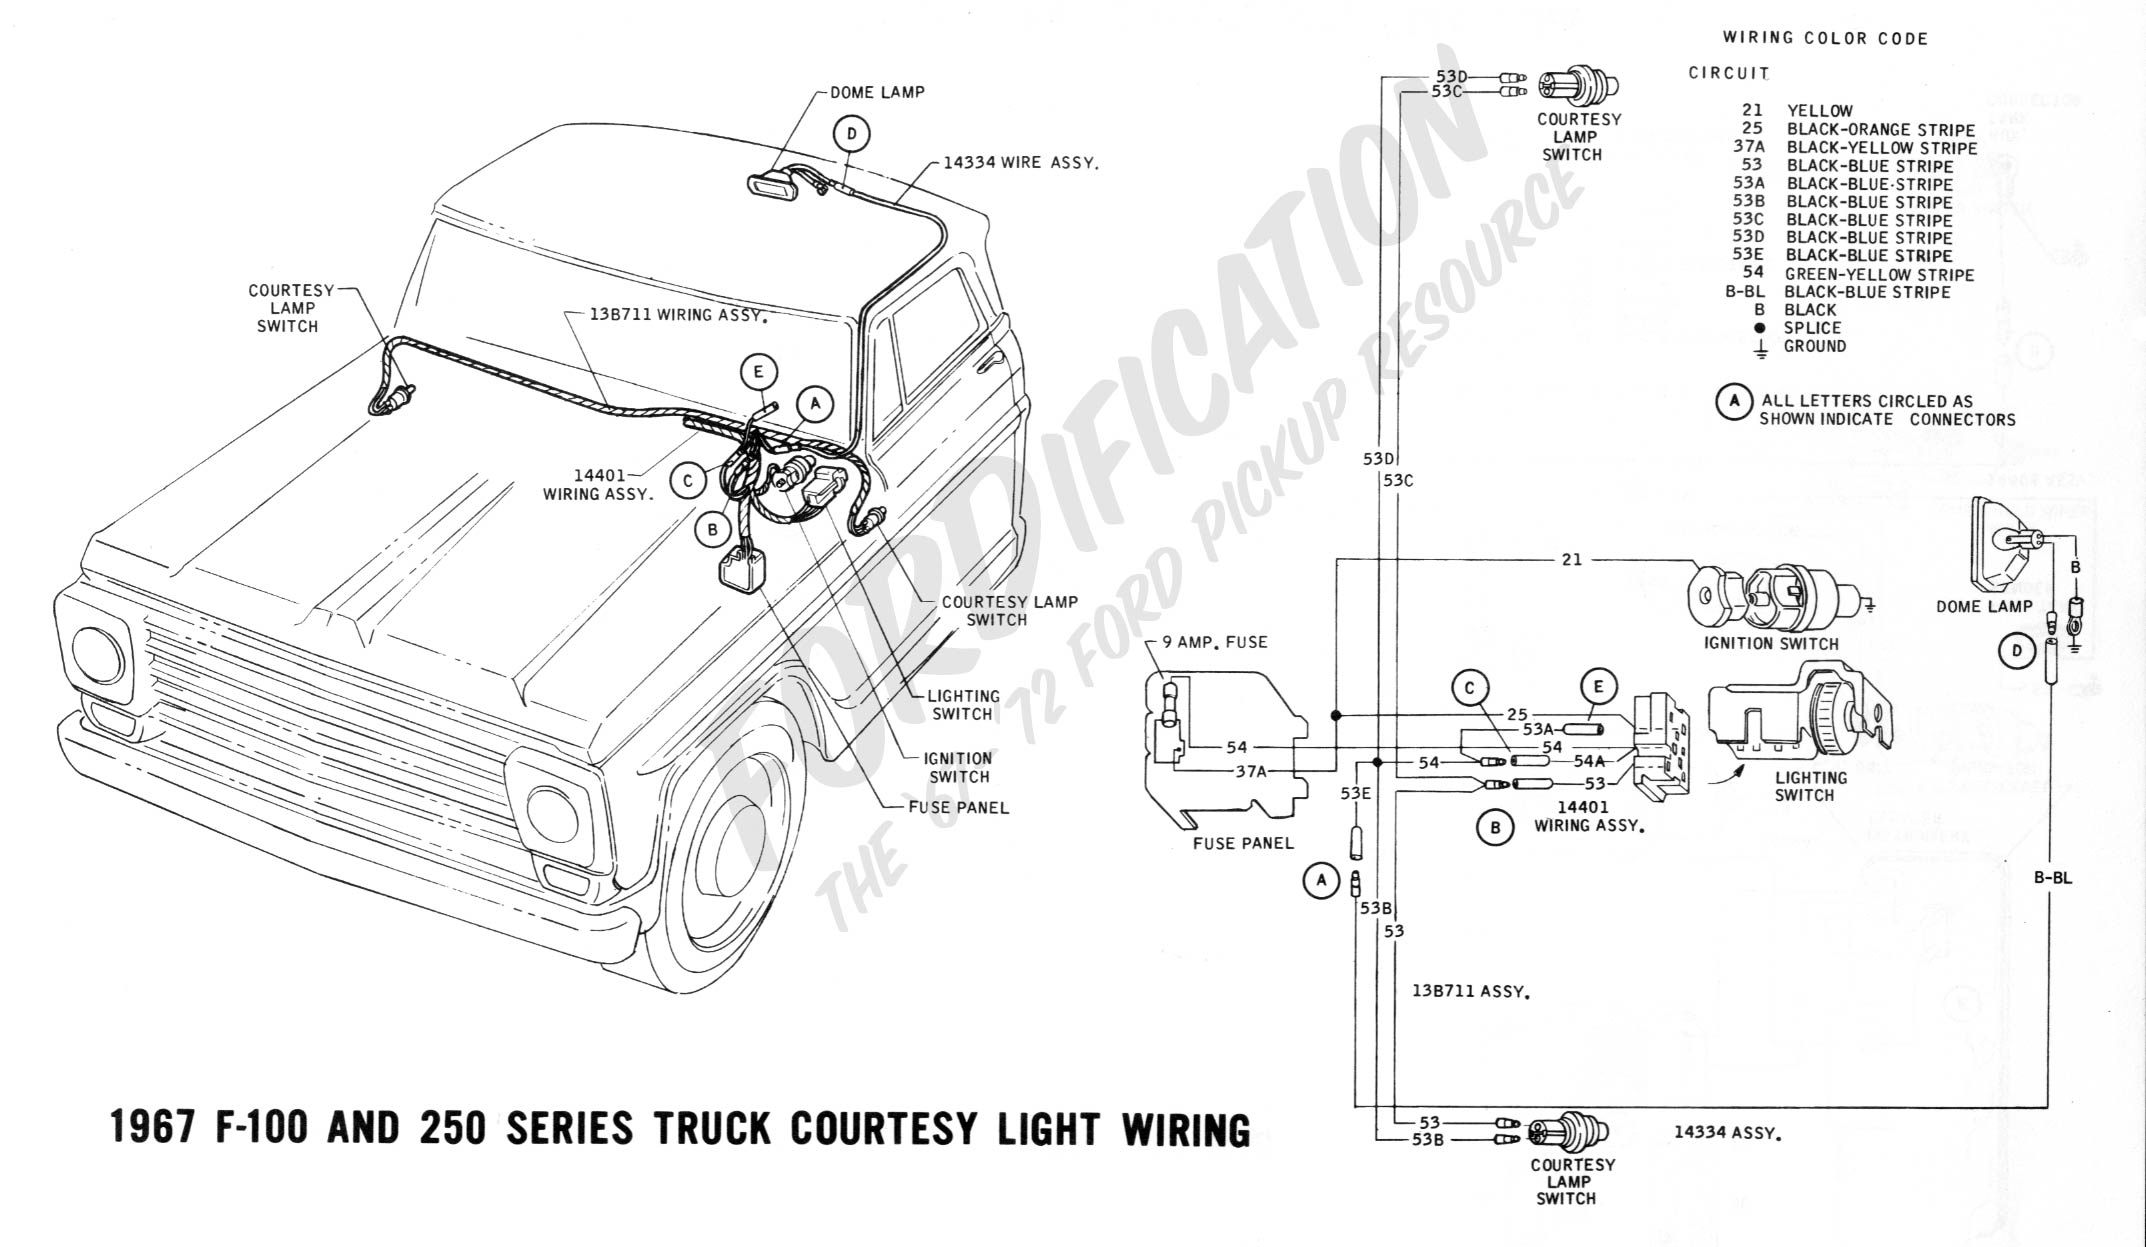 wiring 1967courtesylight ford truck technical drawings and schematics section h wiring Ford Trailer Plug Wiring Diagram at readyjetset.co